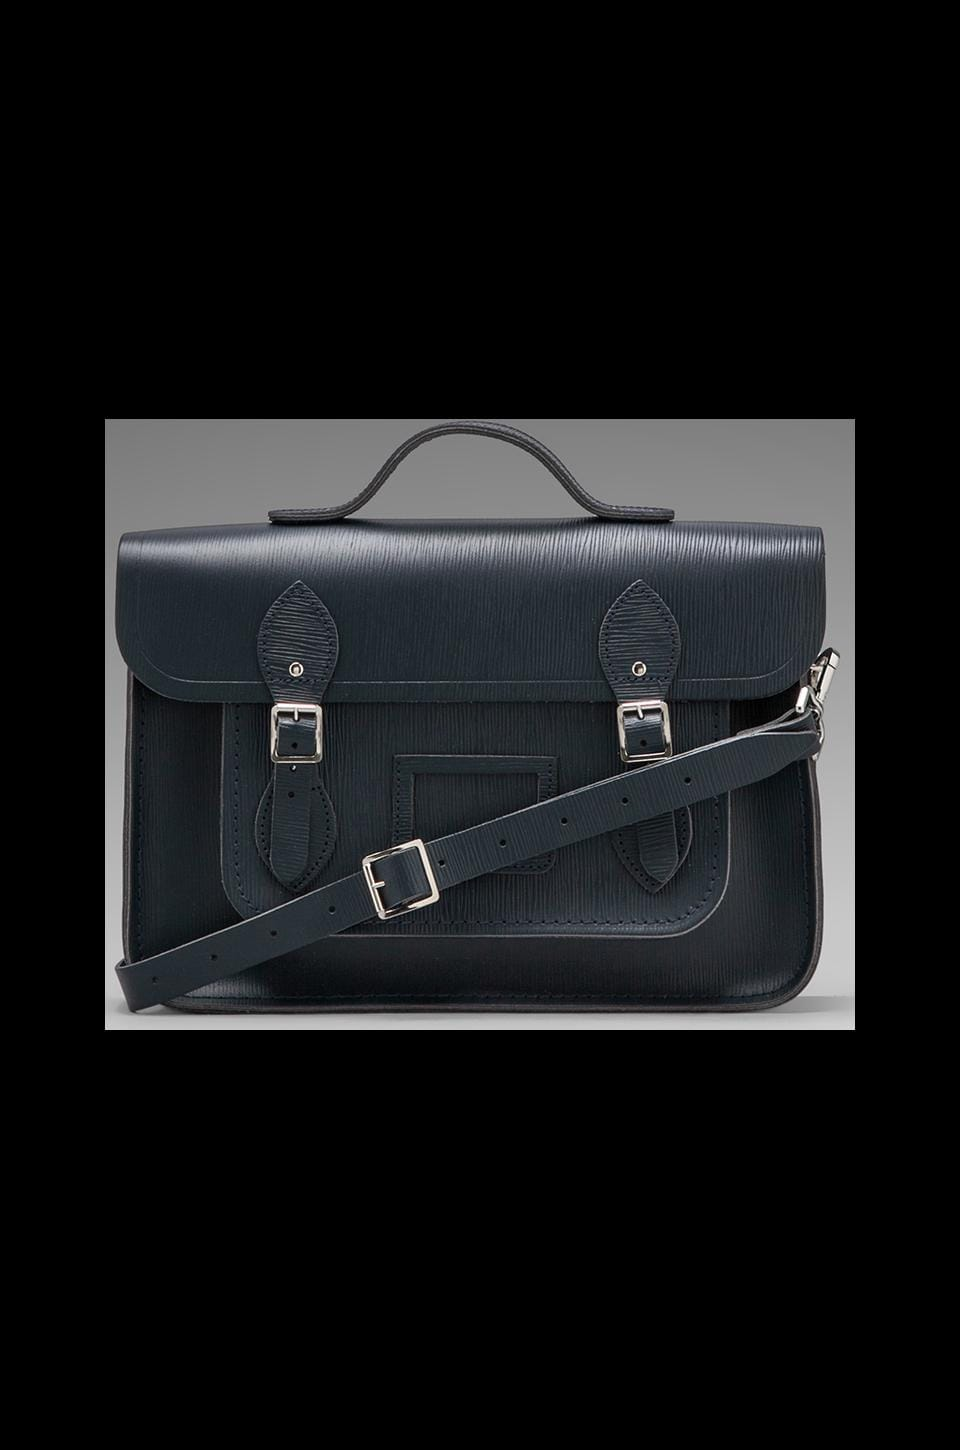 The Cambridge Satchel Company Embossed Stamp Satchel in Navy